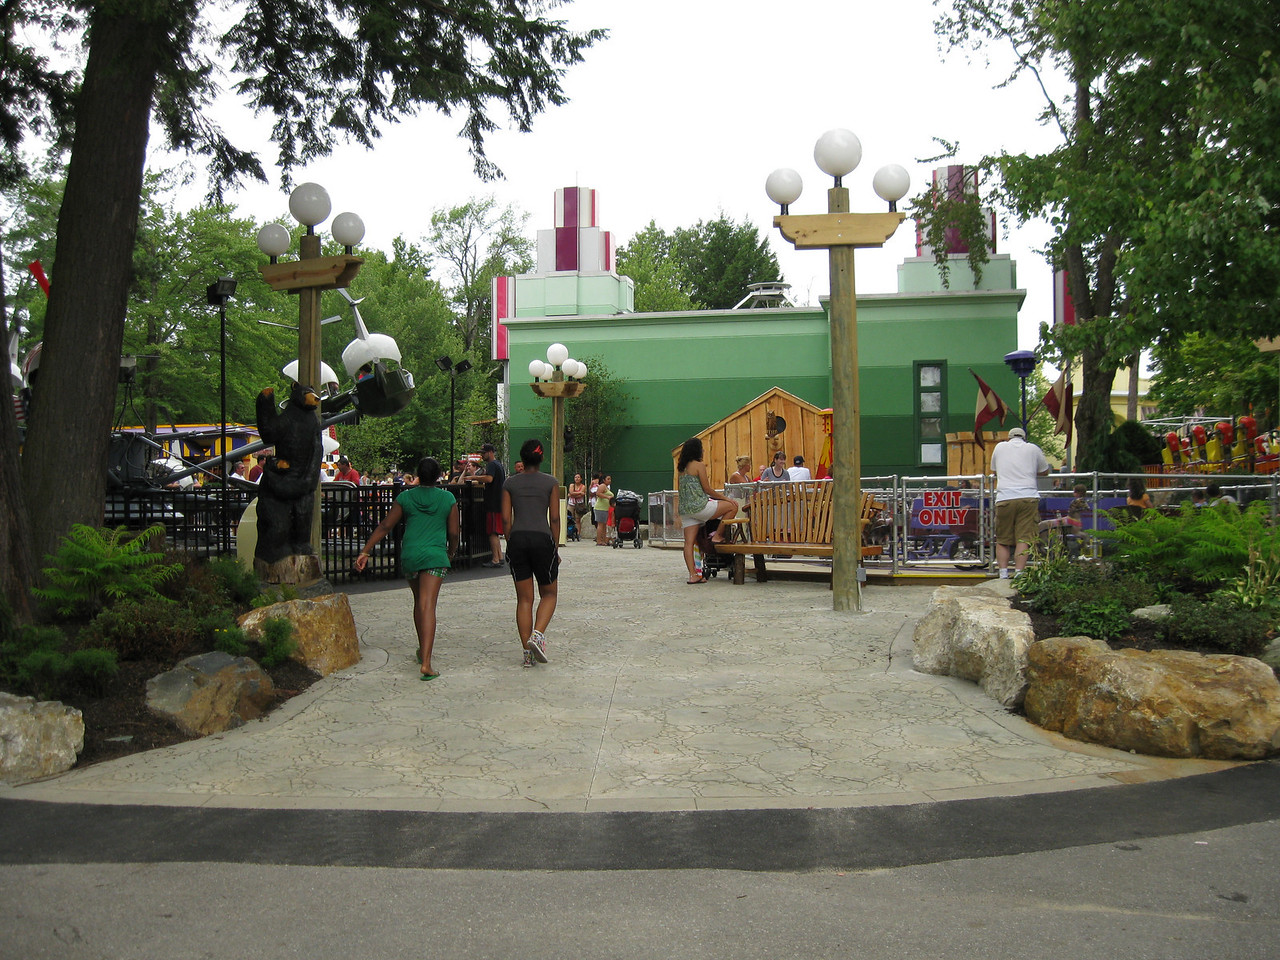 The back of the new kiddie land.